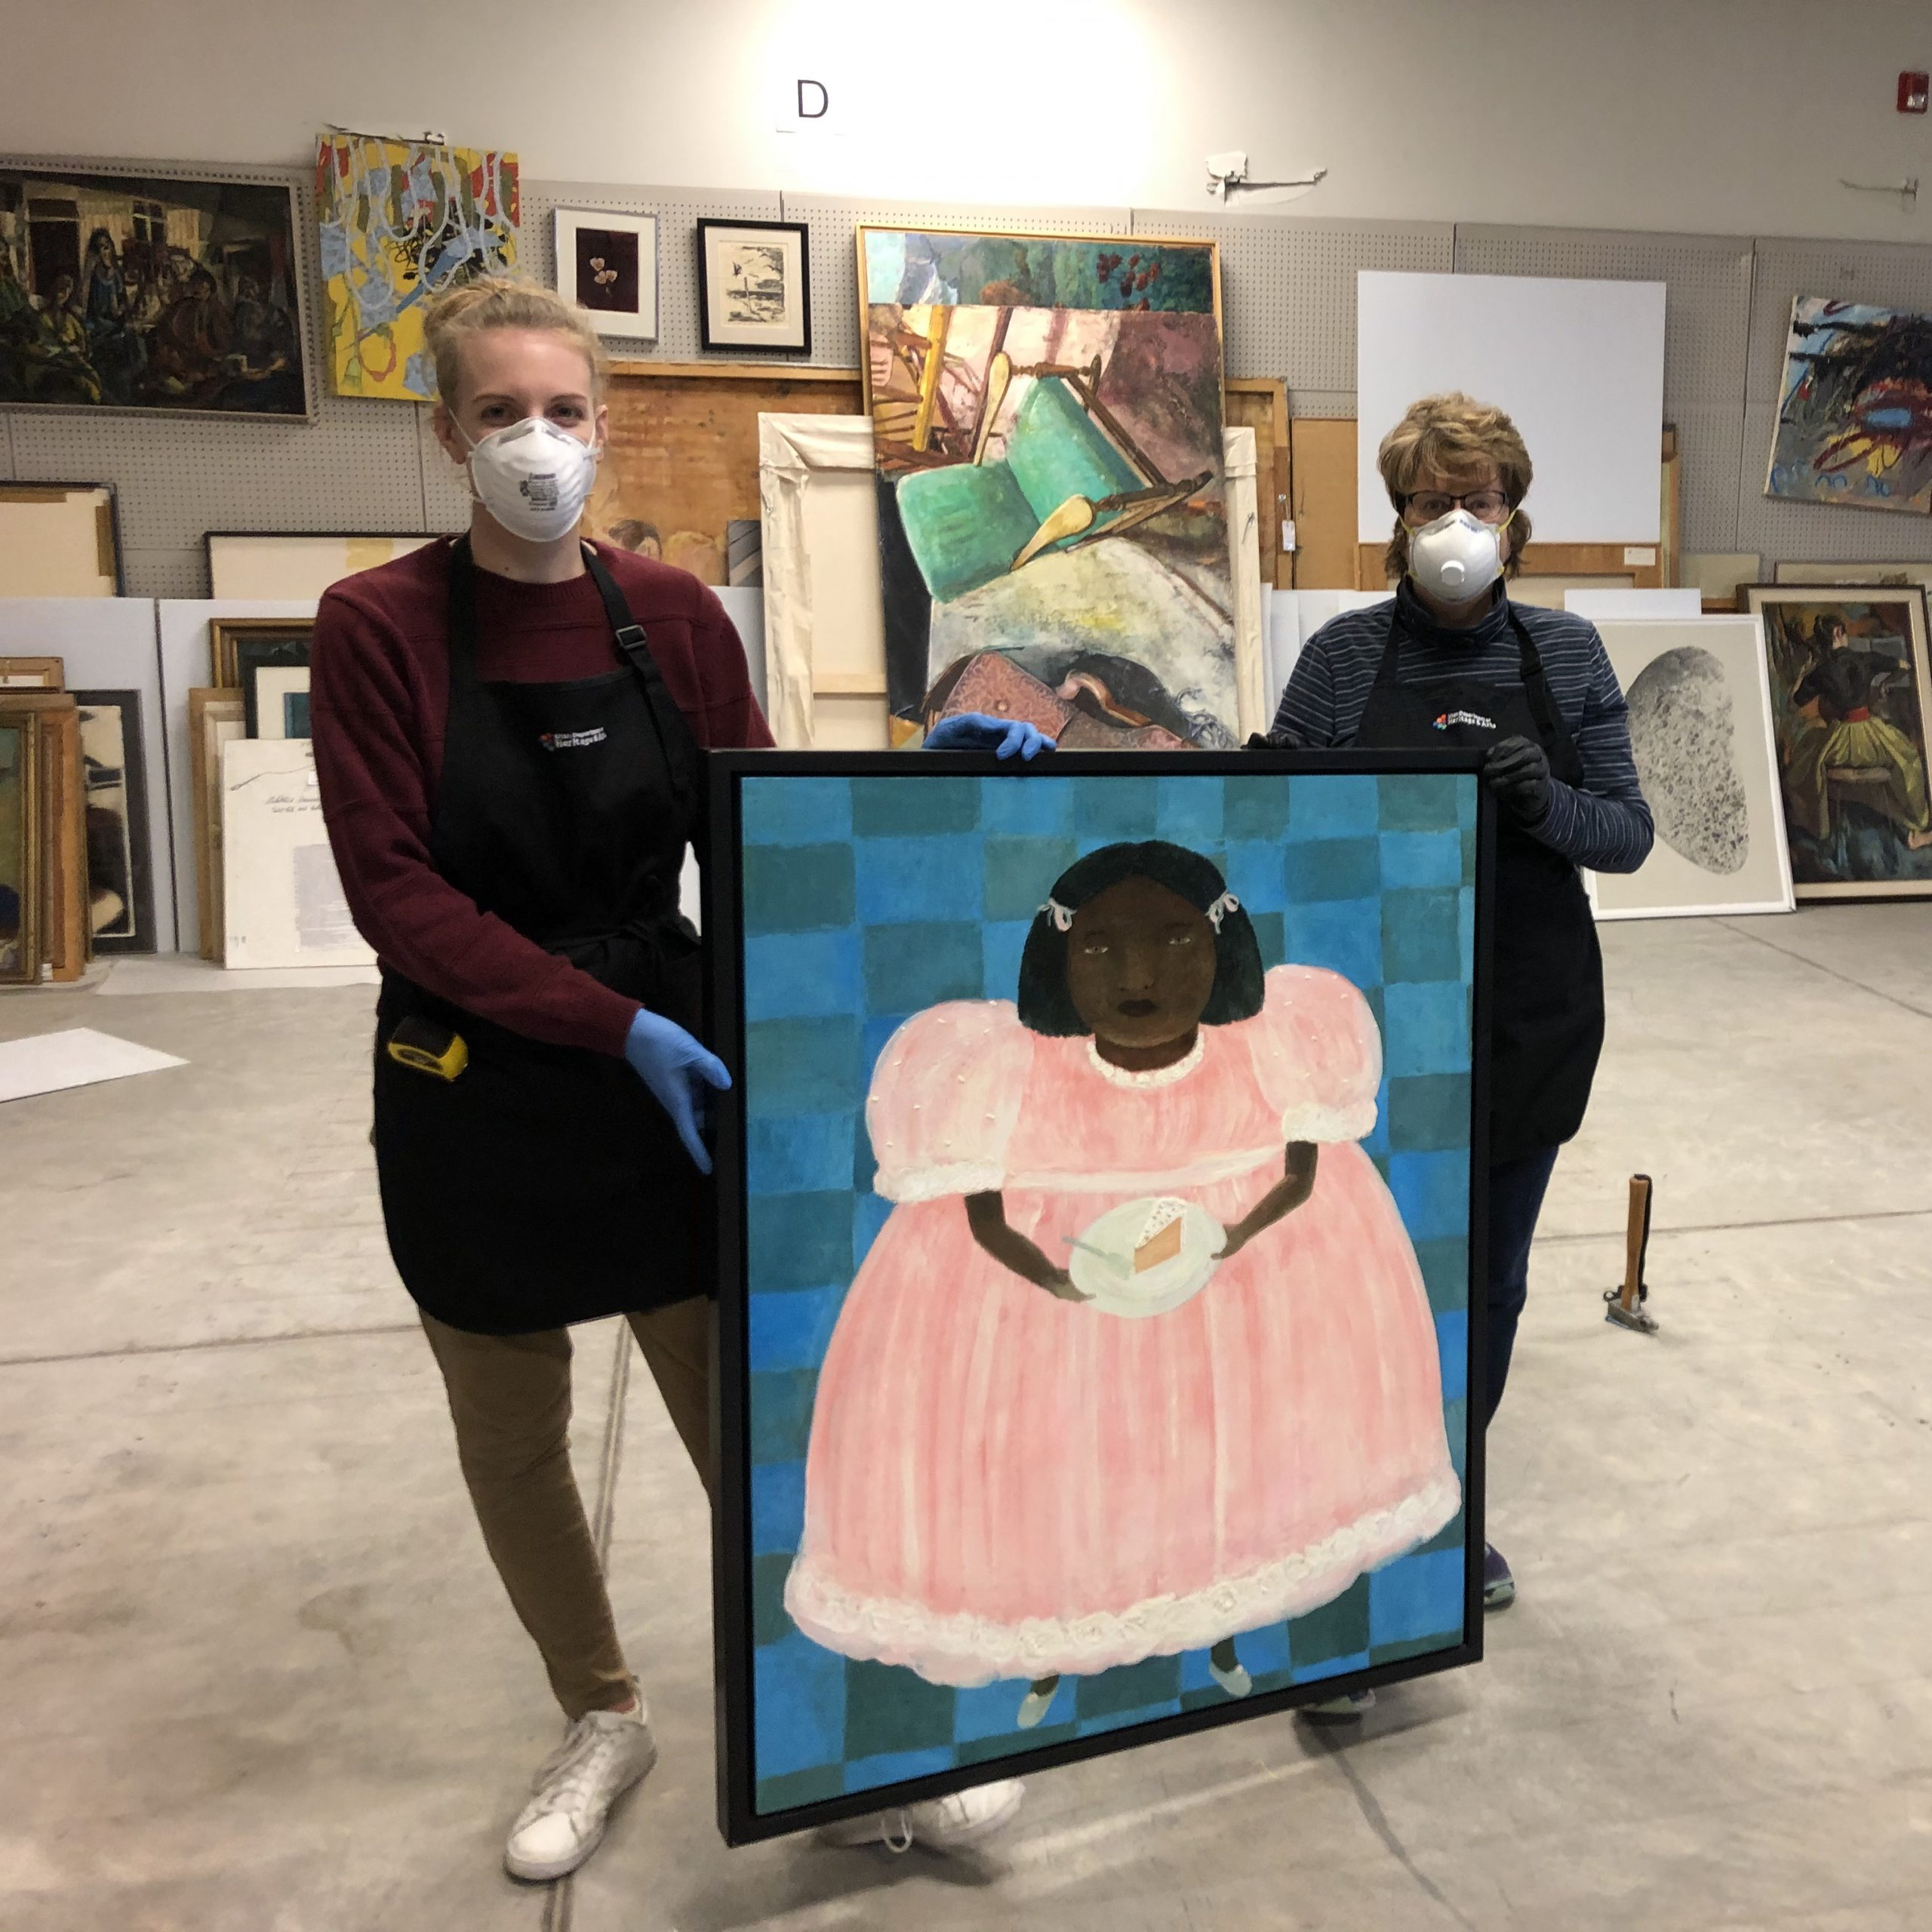 Two women, wearing white face masks, stand holding a painting of a brown-skinned girl wearing a pink dress, holding a white piece of cake on a plate.